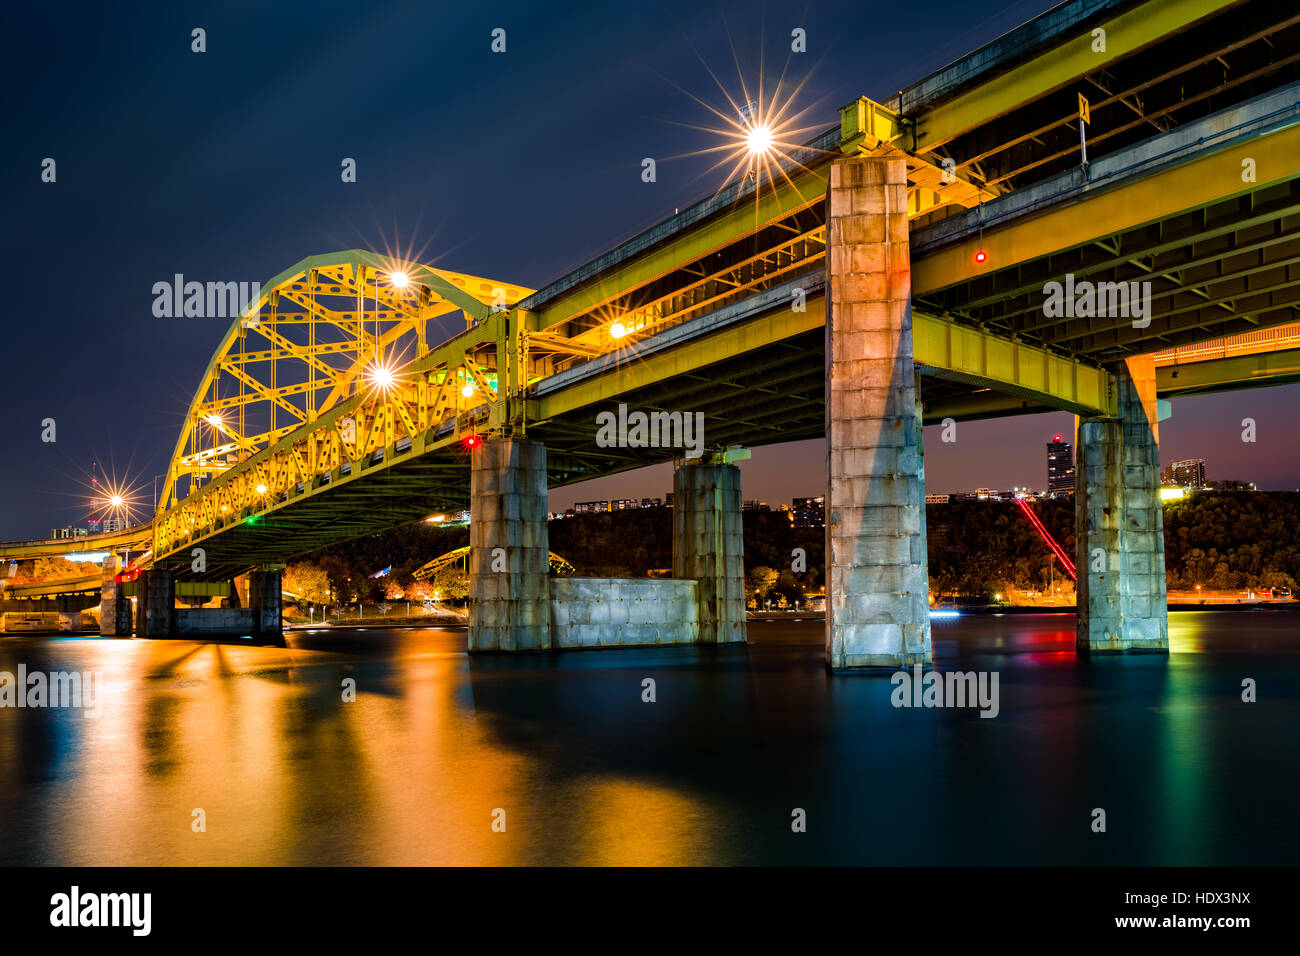 Fort Duquesne Bridge spans Allegheny river in Pittsburgh, Pennsylvania - Stock Image